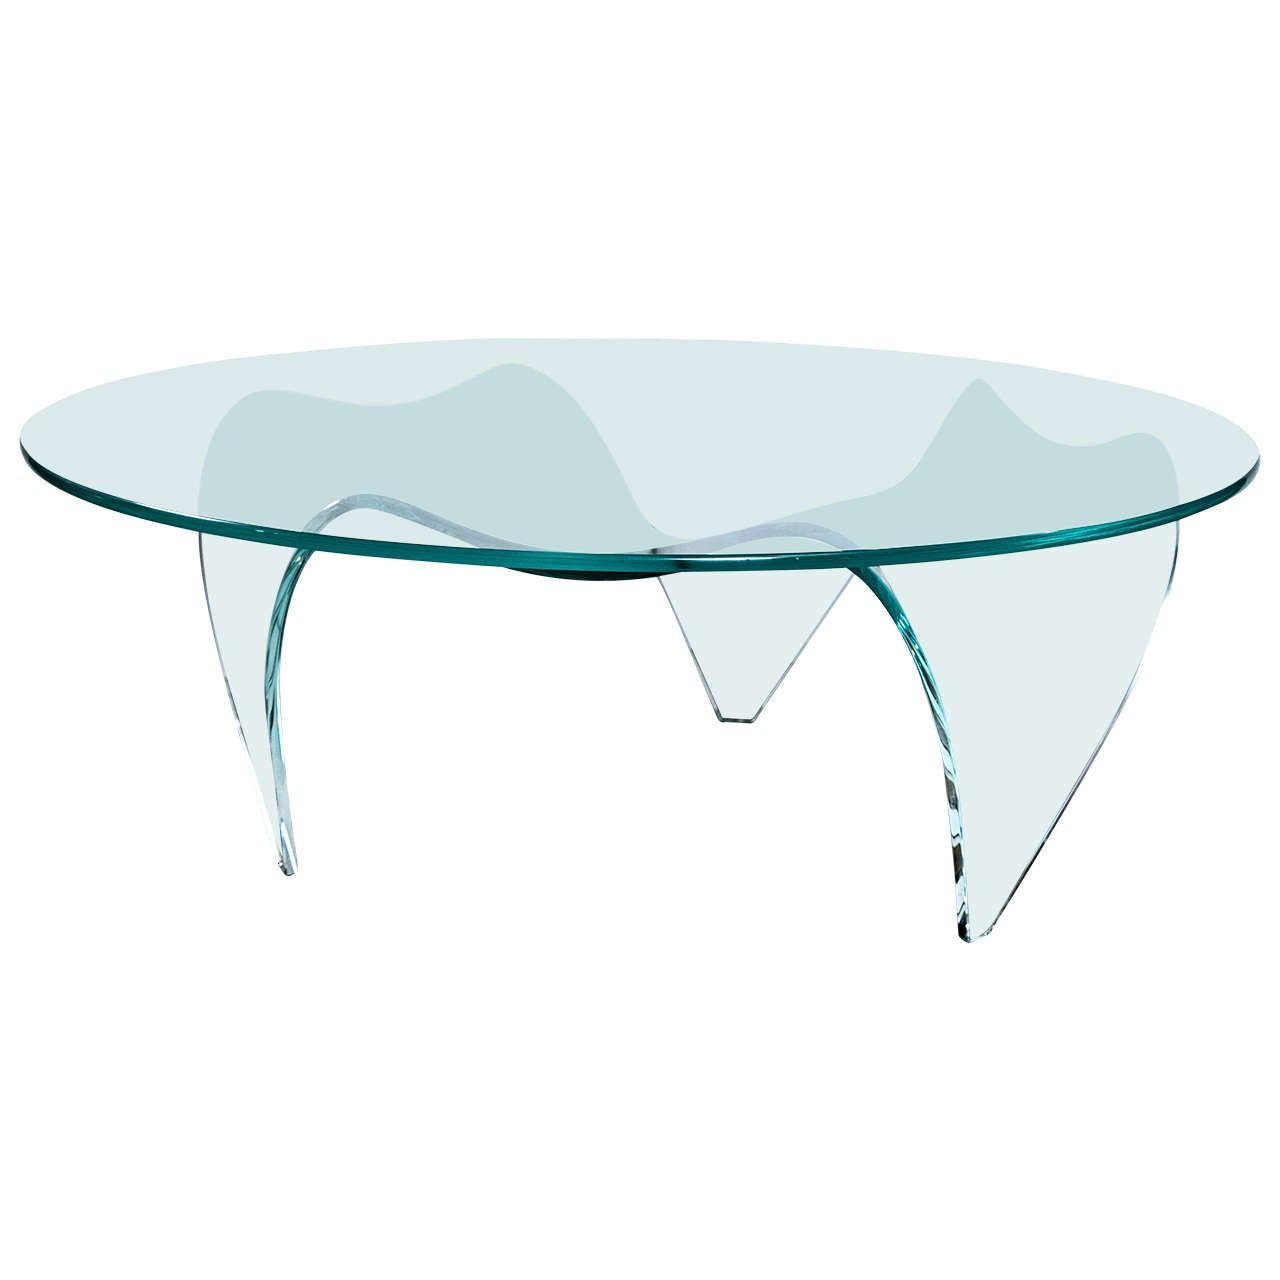 Pace Round Glass Top And Glass Base Coffee Table For Sale At 1stdibs